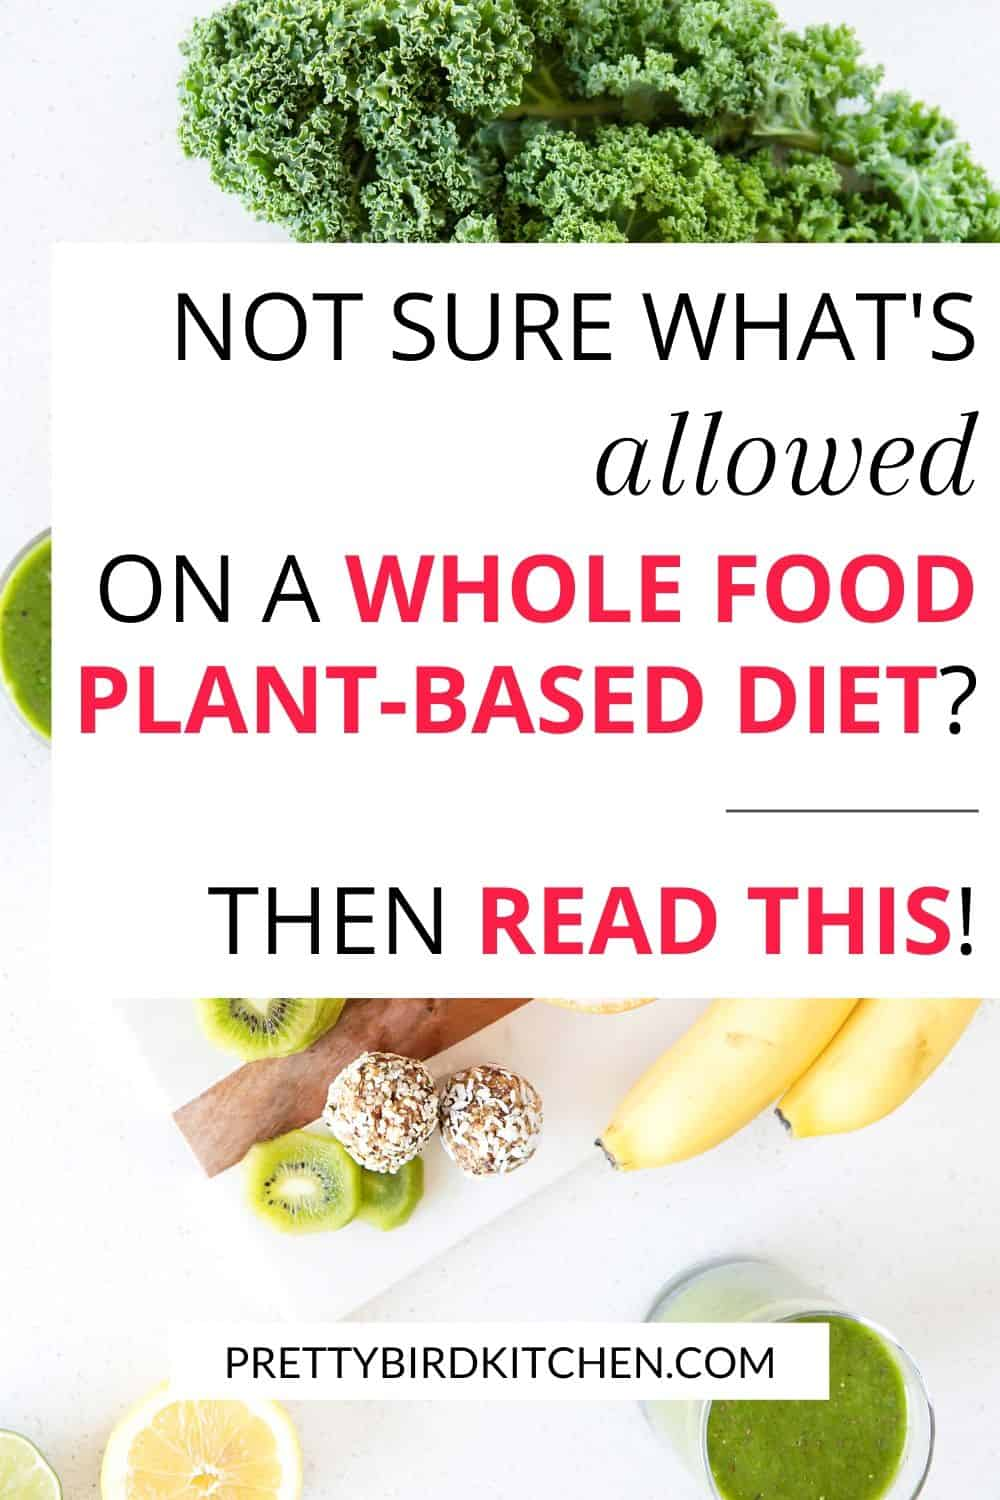 What's allowed on a whole food plant-based diet